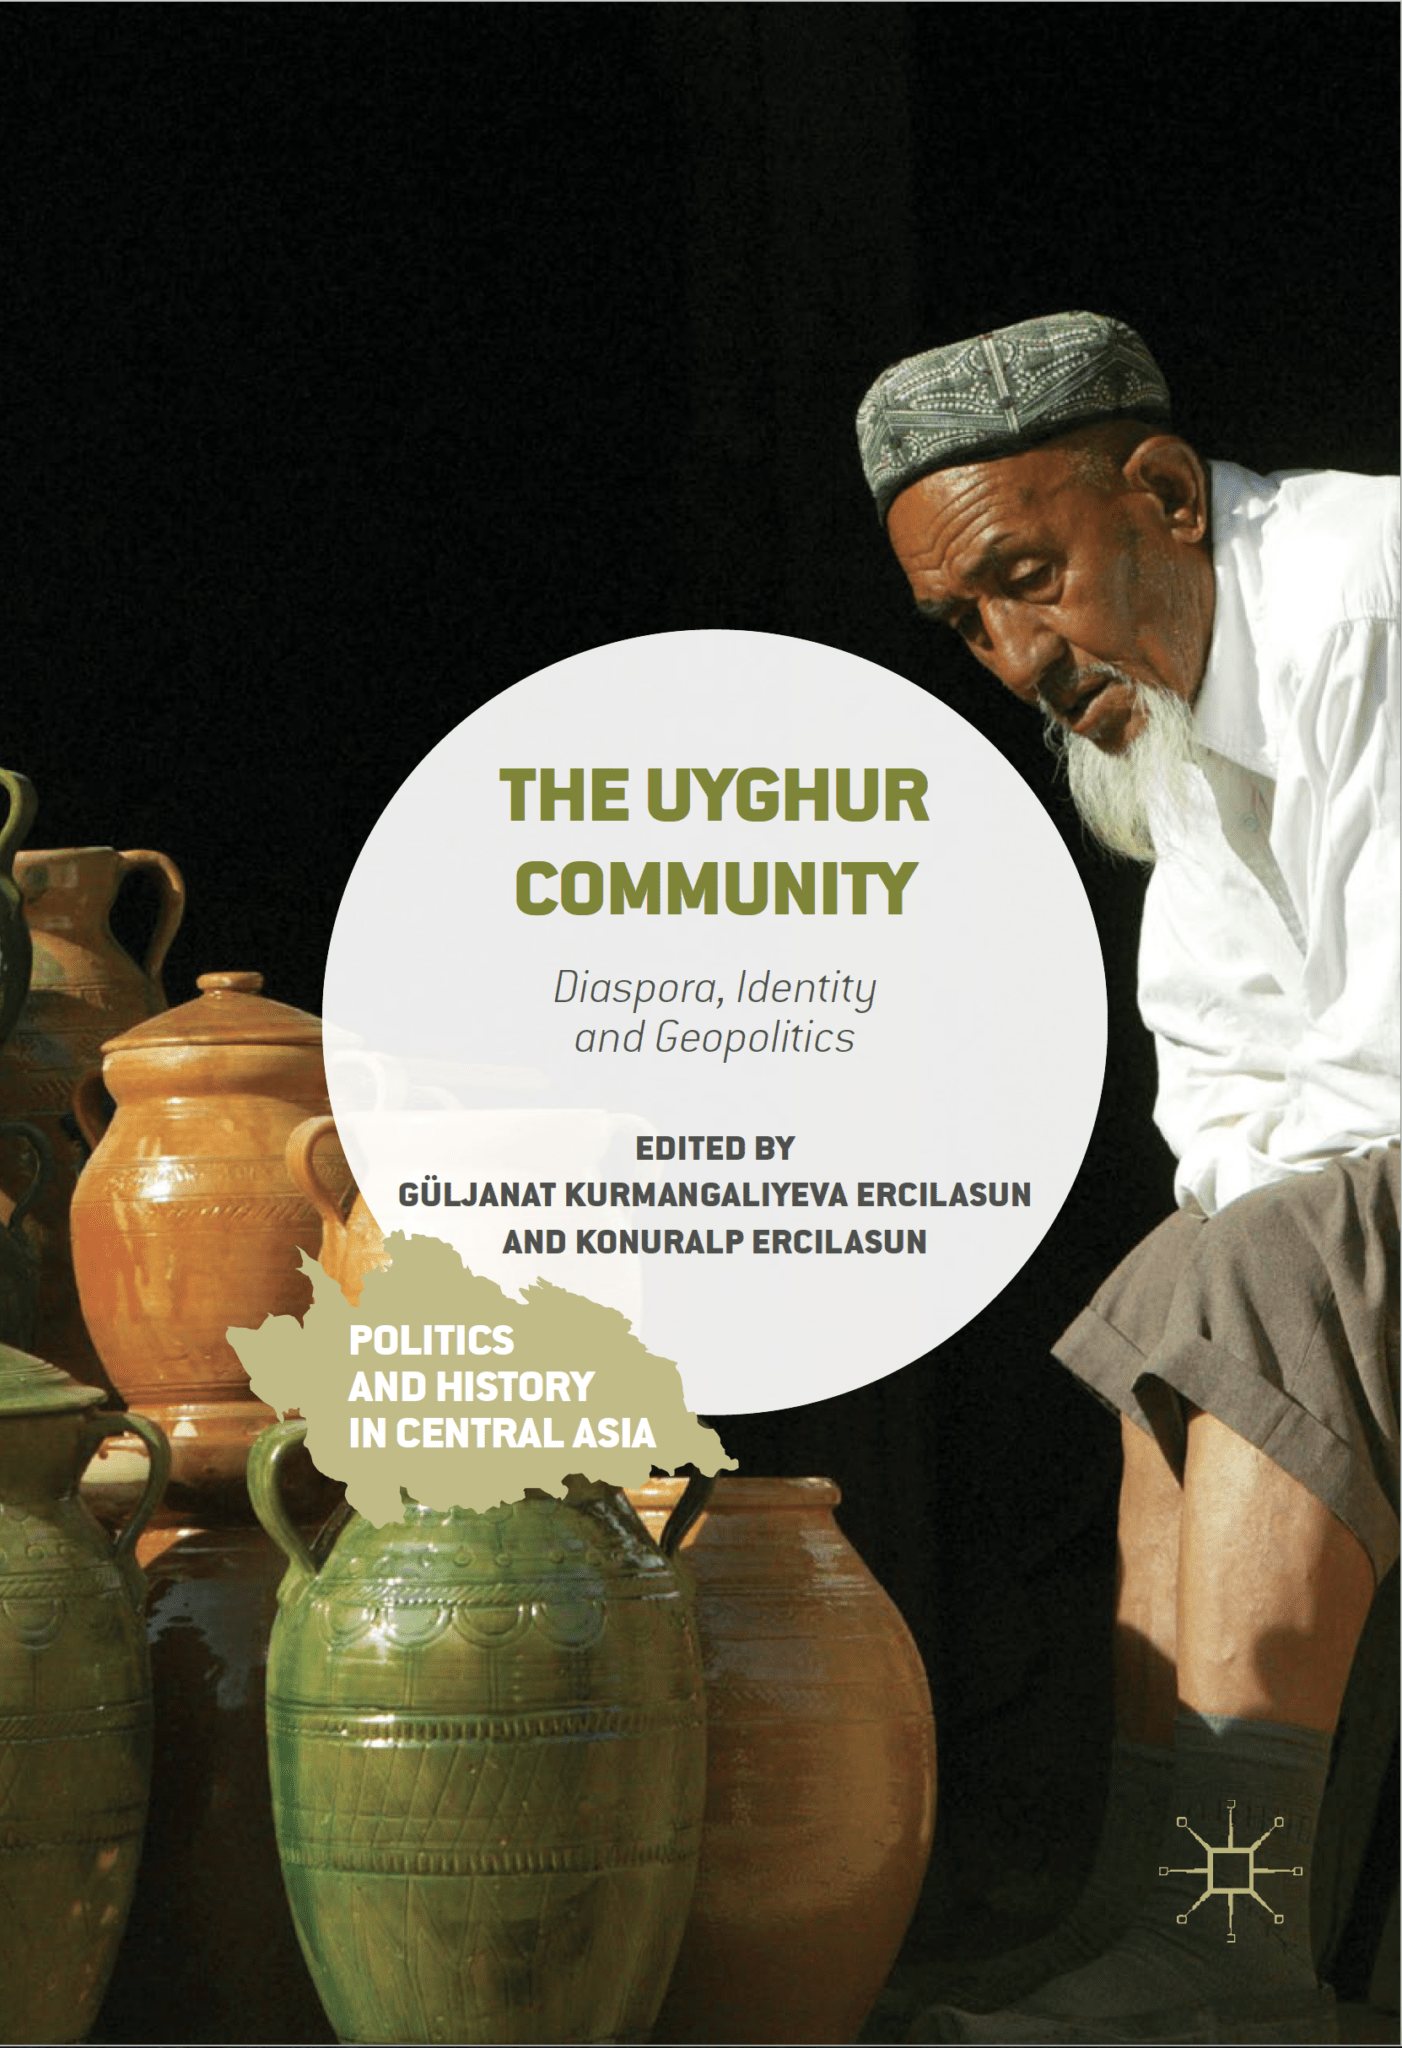 Screenshot 2020 02 01 at 14.39.58 - The Uyghur Community: Diaspora, Identity and Geopolitics